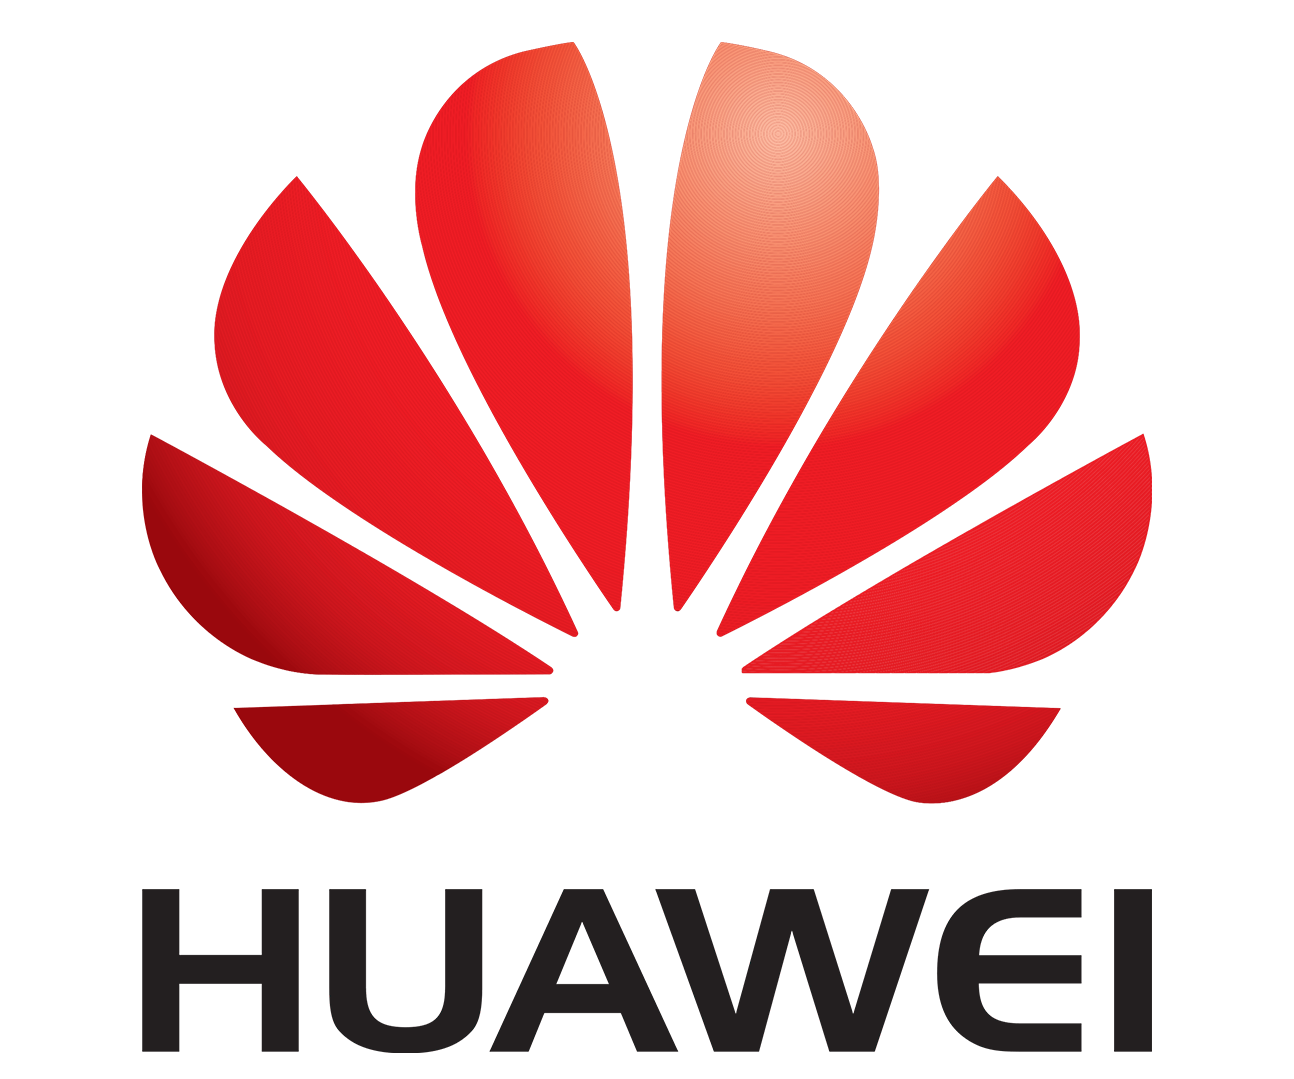 Codice Sconto 20€ Watch GT 2e Su HUAWEI Coupons & Promo Codes